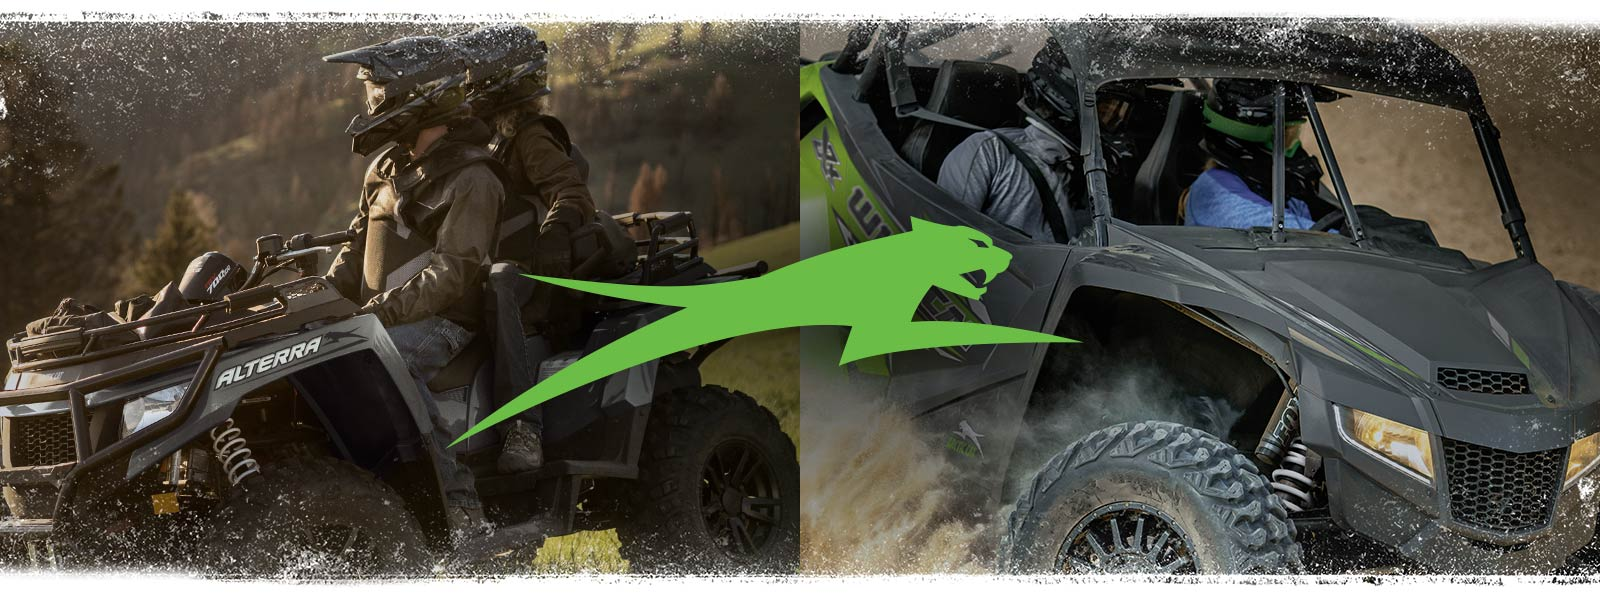 Explore the 2020 Arctic Cat Offroad Lineup